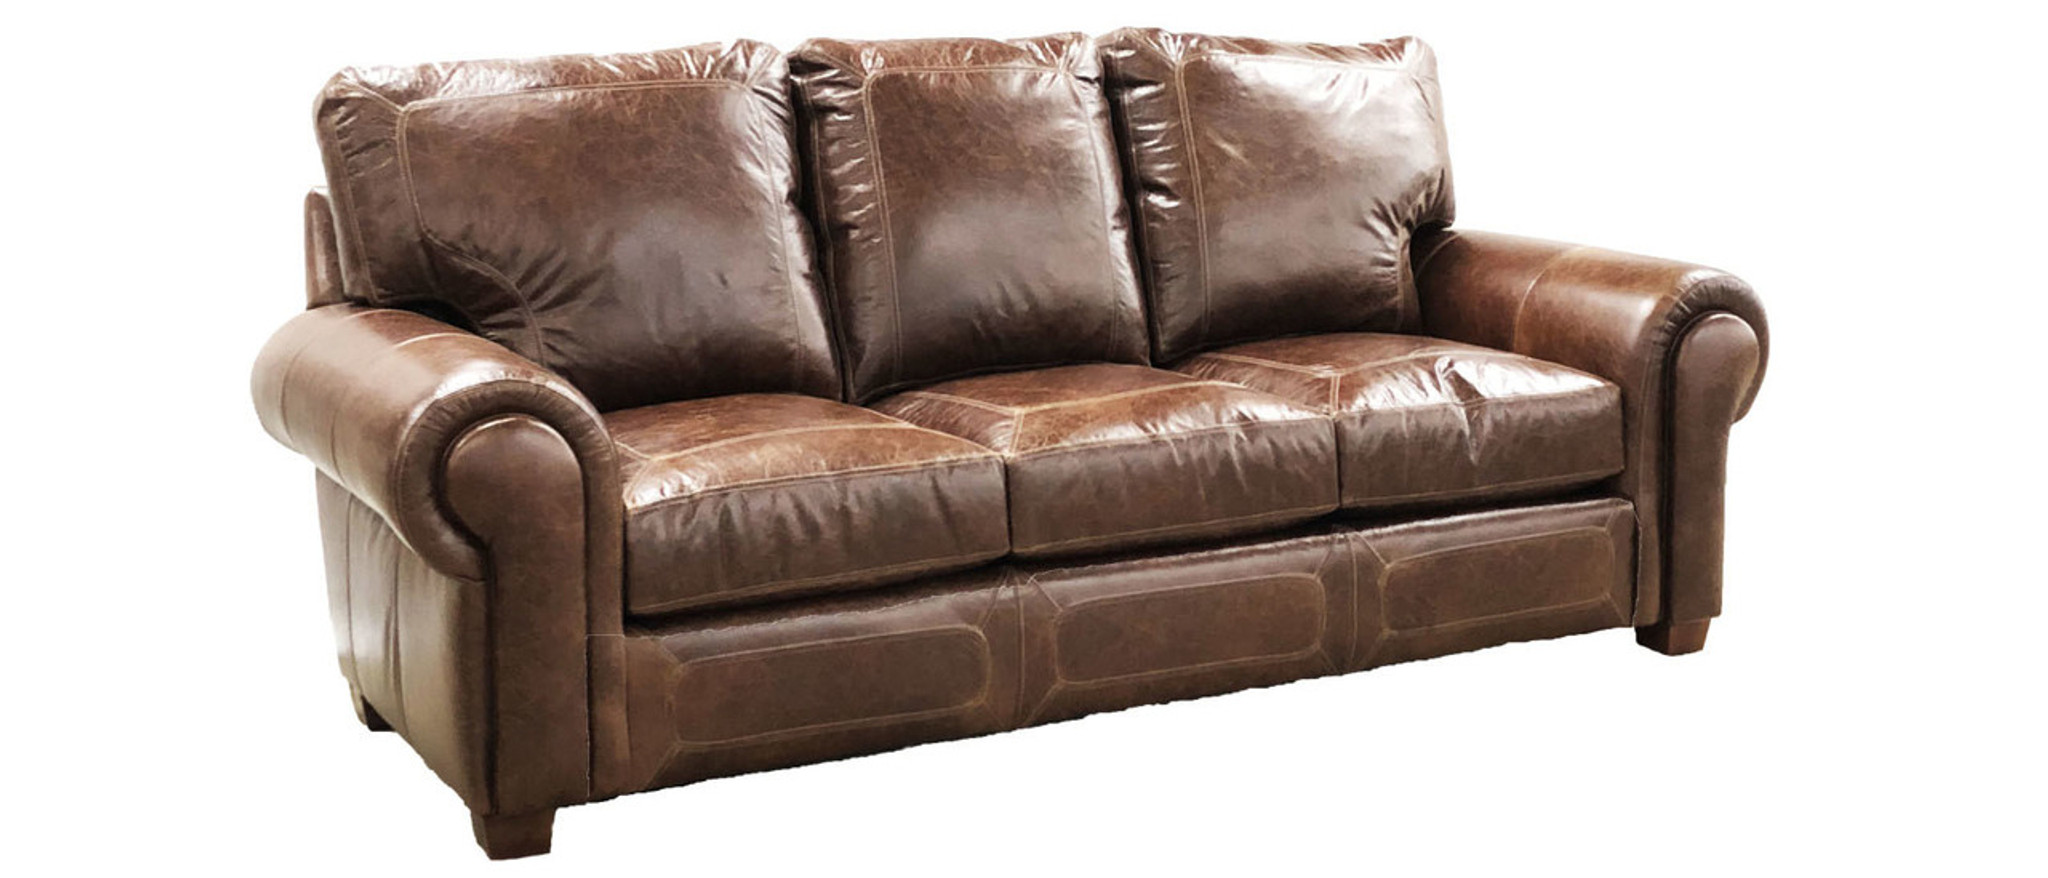 Westchester Leather Sofa ,American Heritage Custom Leather Made In  USA LeatherShoppes.com